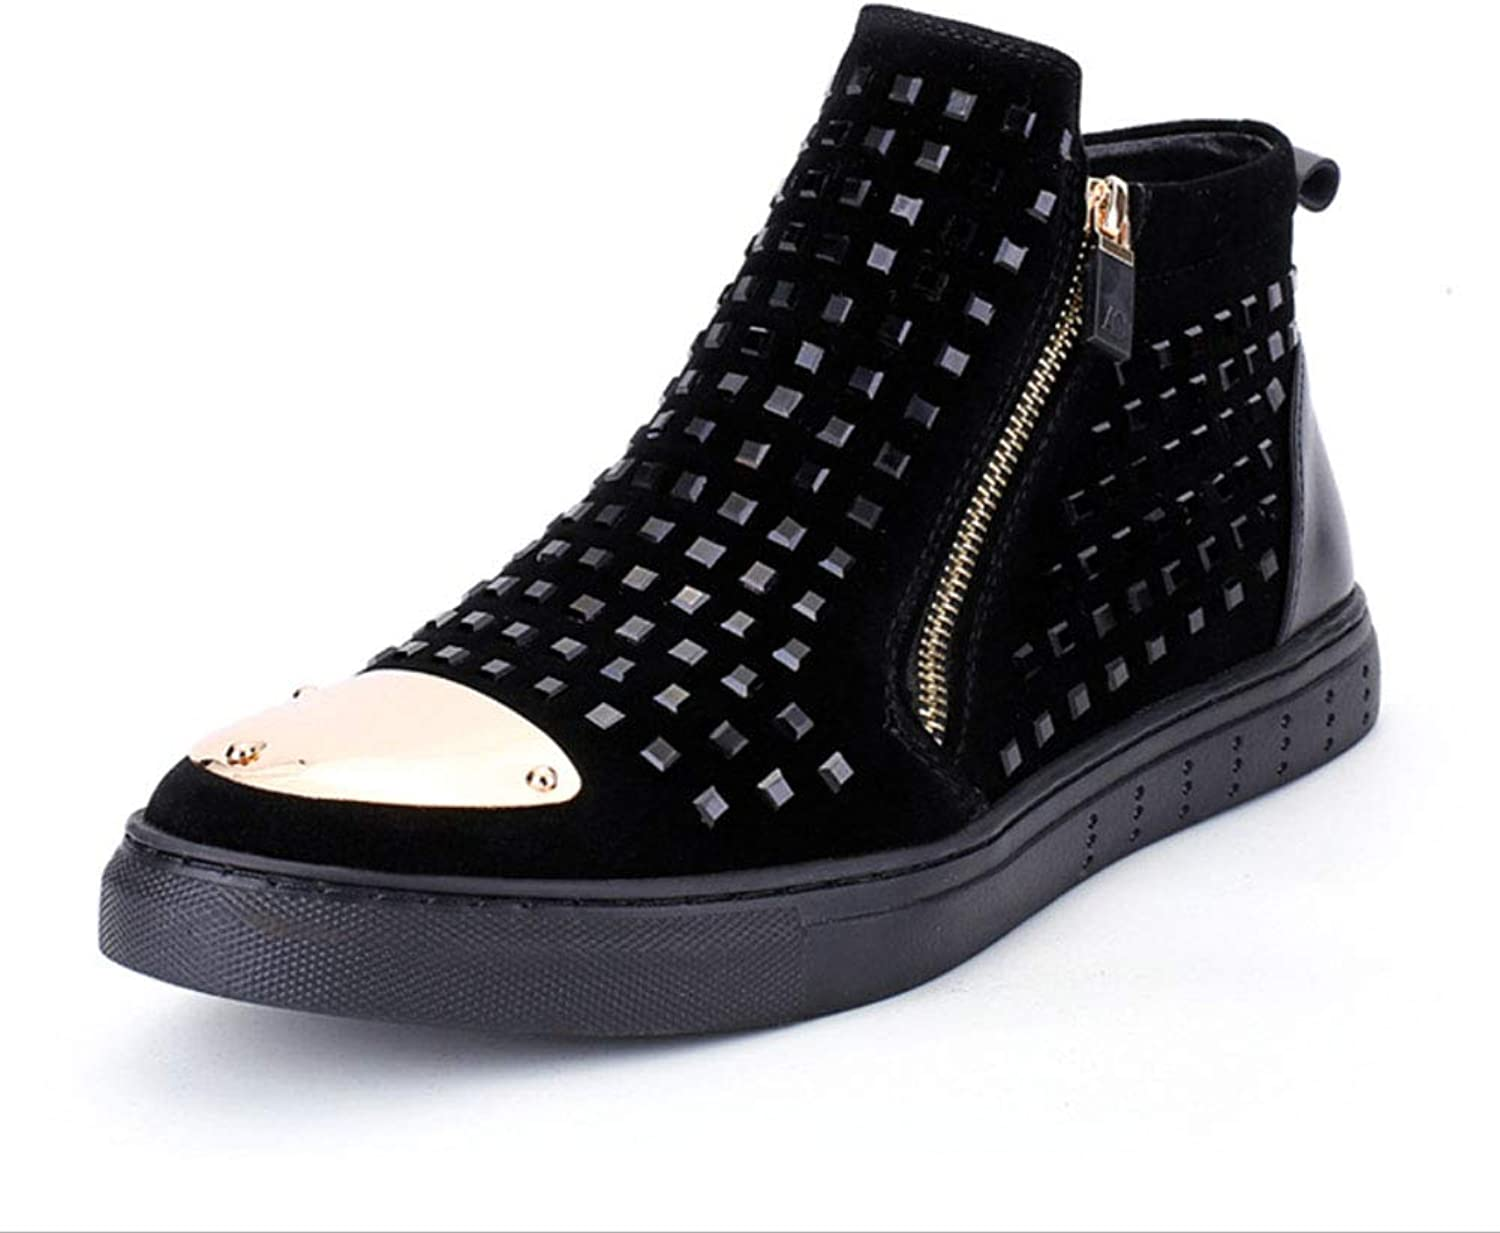 Men's Leather Rivetboots Driving shoes Platform shoes Martin Boots Comfortable Sparkling Glitter Studded shoes Party & Evening Night Club Stage Personality